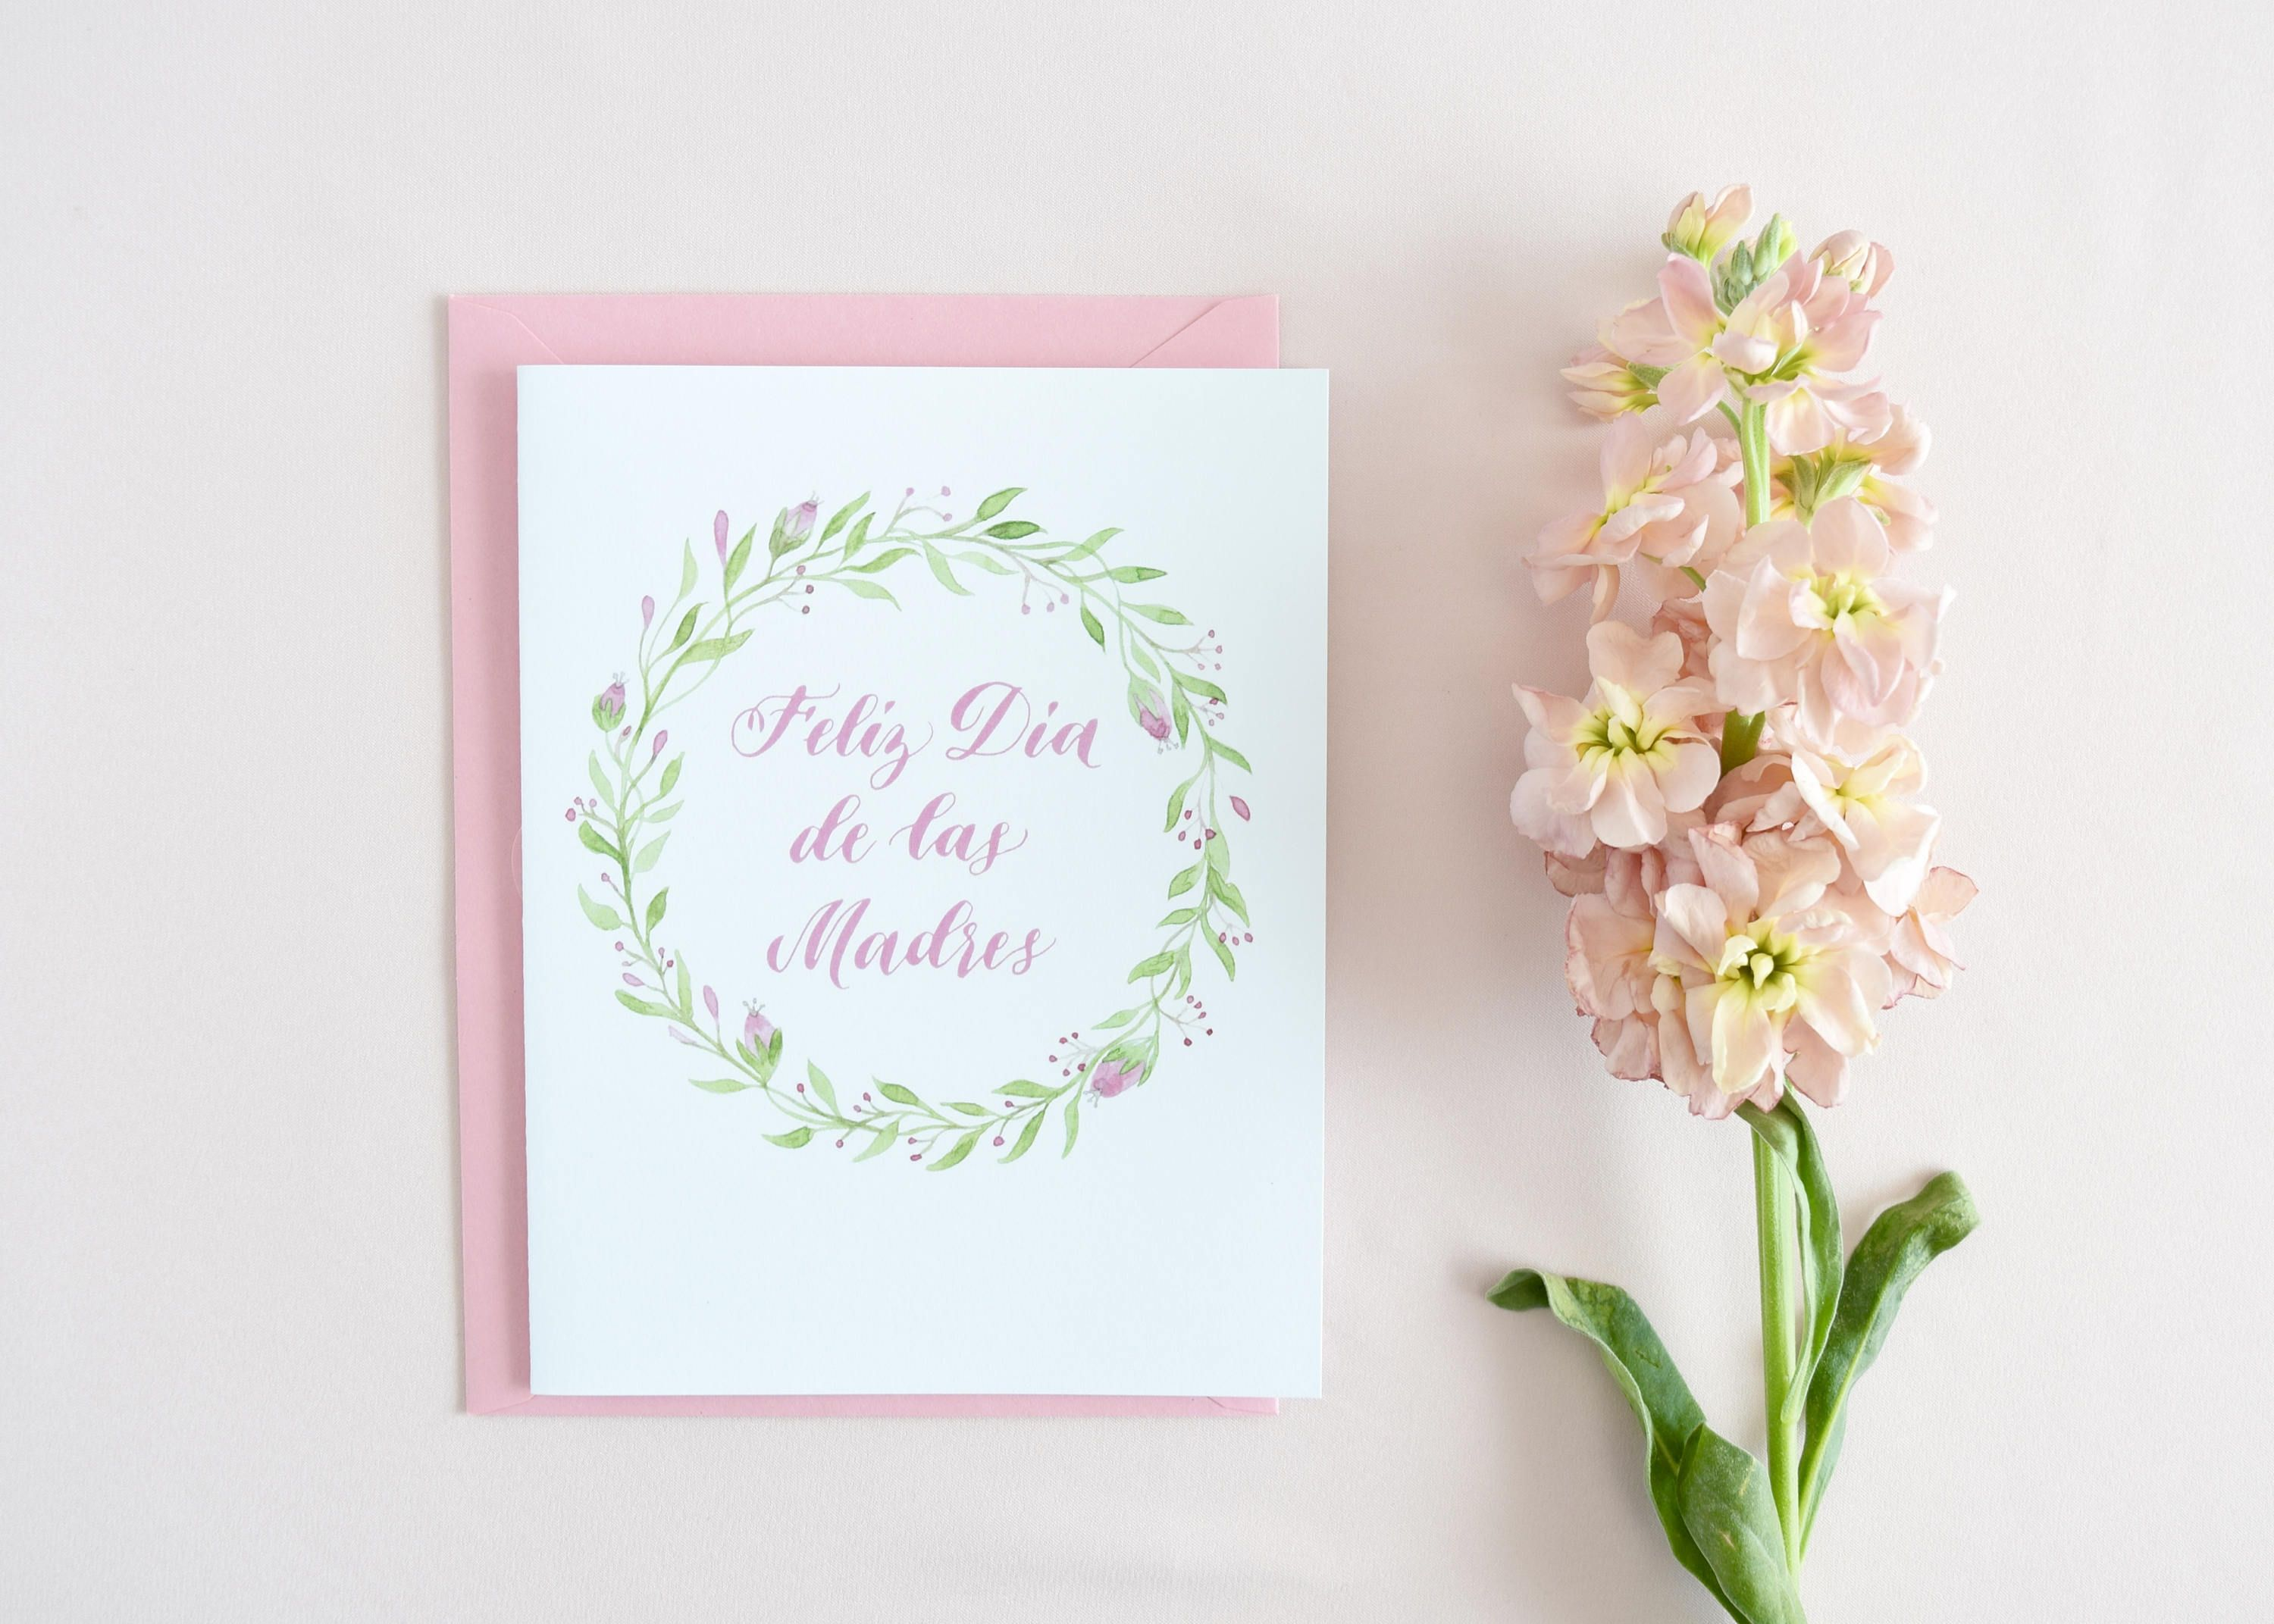 Feliz Dia De Las Madres Mother S Day Card Watercolor Calligraphy Mothers Gift Gifts For Her Pink Envelope